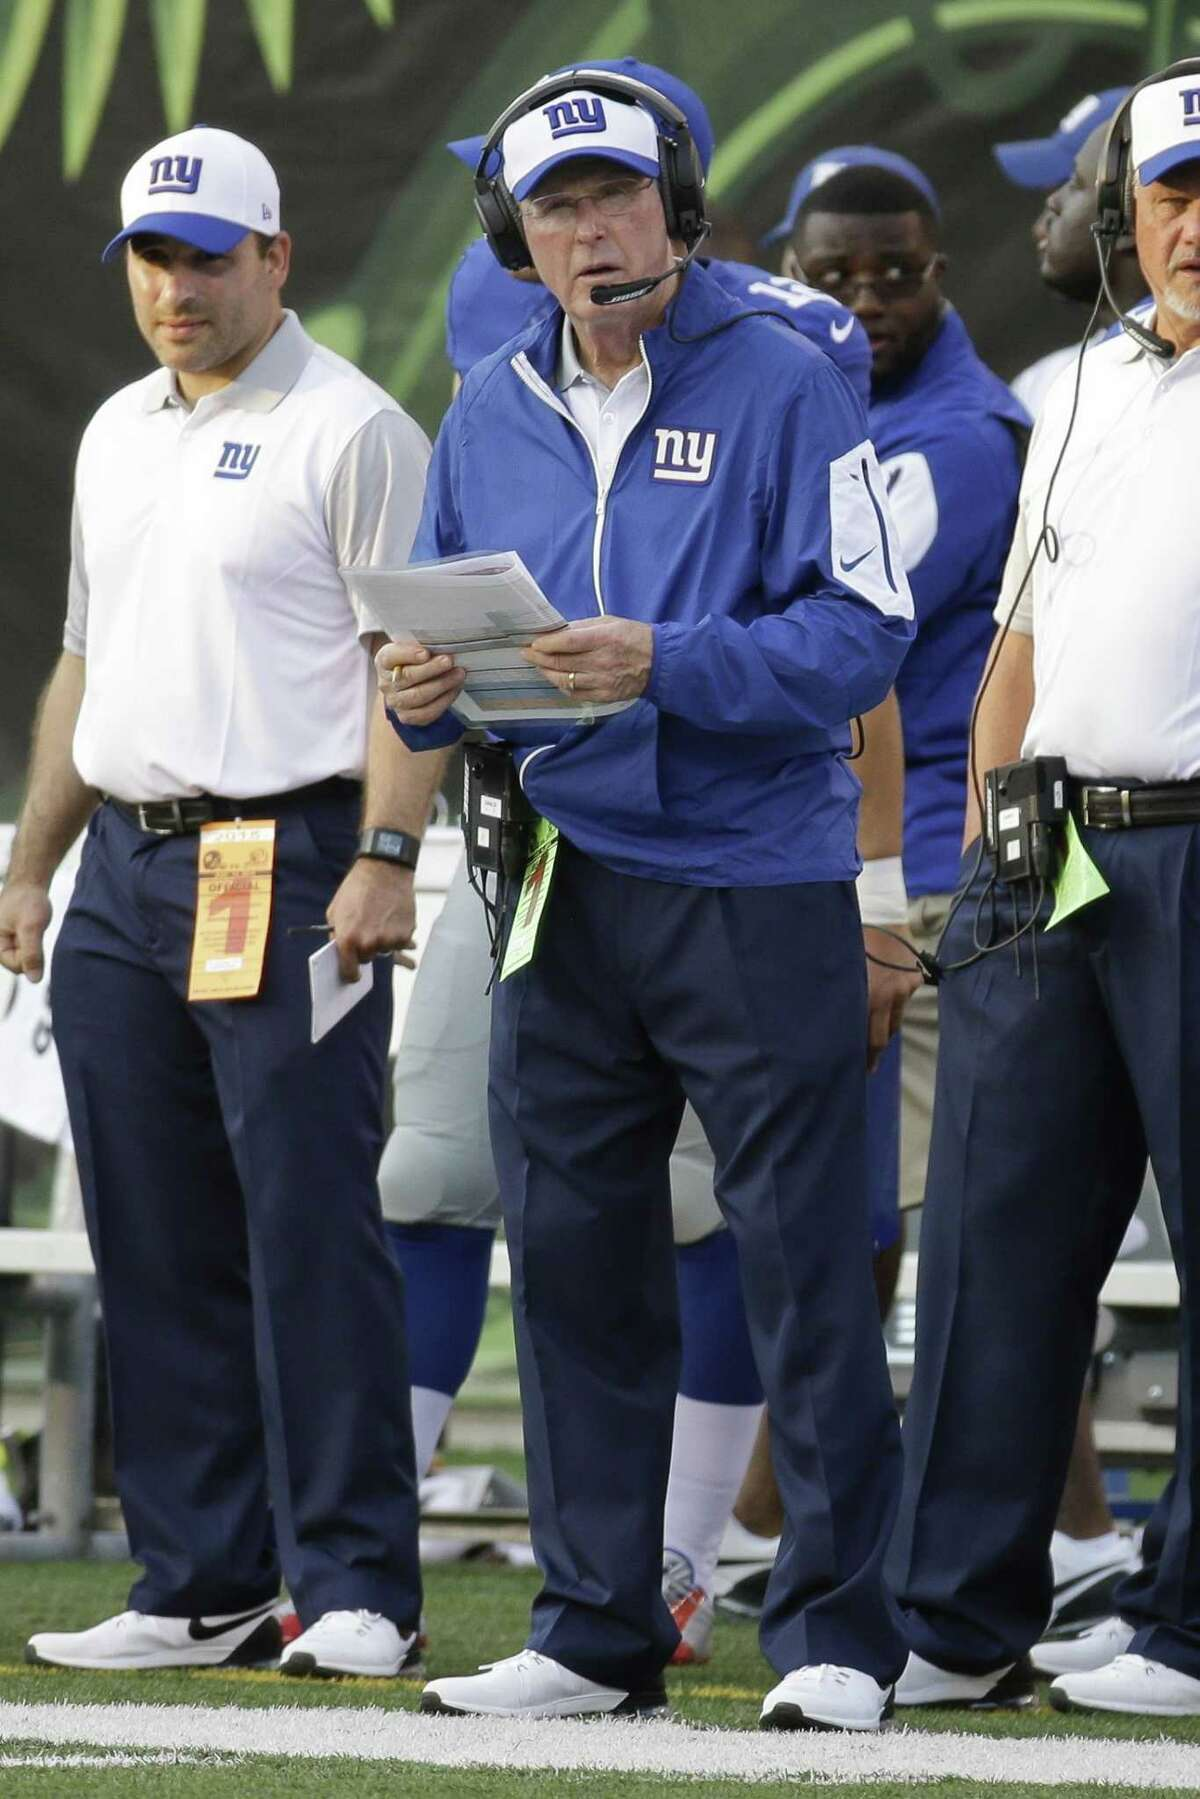 New York Giants head coach Tom Coughlin looks onto the field during Friday's preseason game.